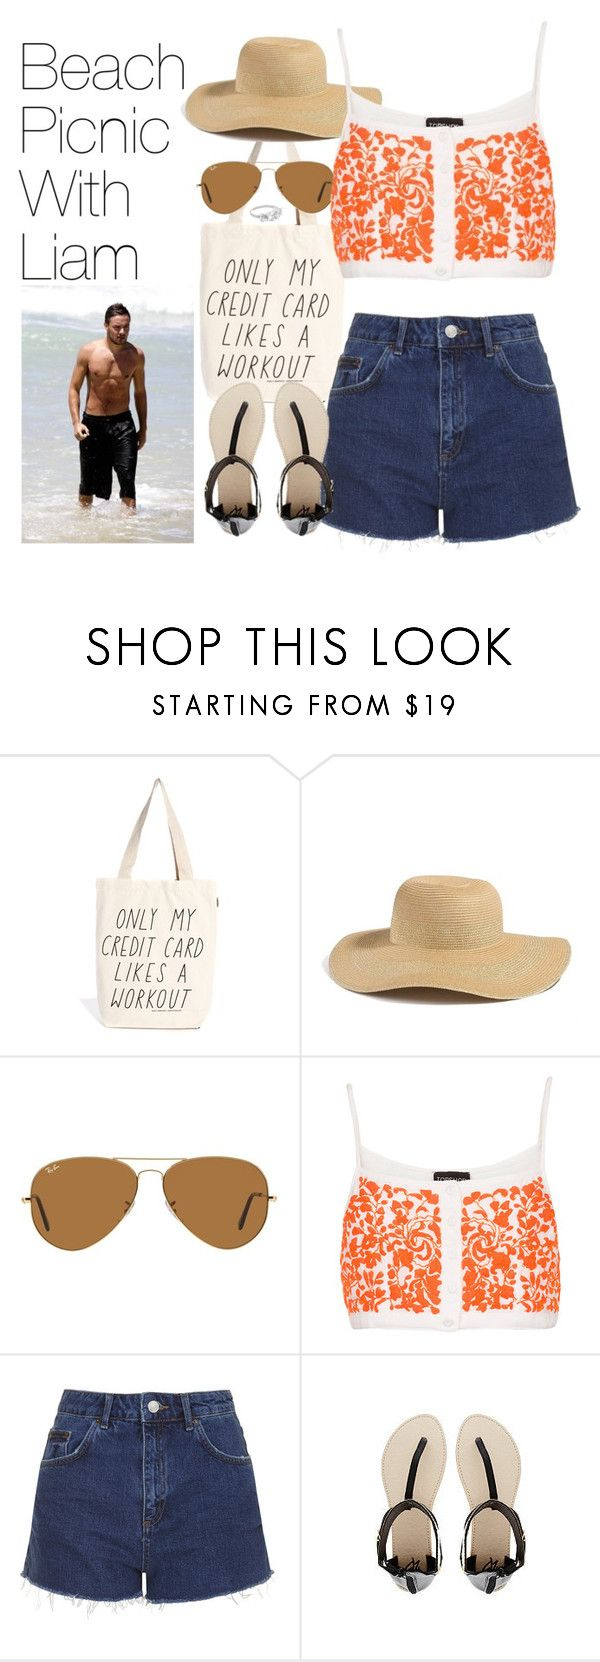 """""""Beach Picnic with Liam"""" by onedirectionimagineoutfits99 ❤ liked on Polyvore featuring Talented Totes, GUESS, Ray-Ban, Topshop, 2b bebe and Payne"""